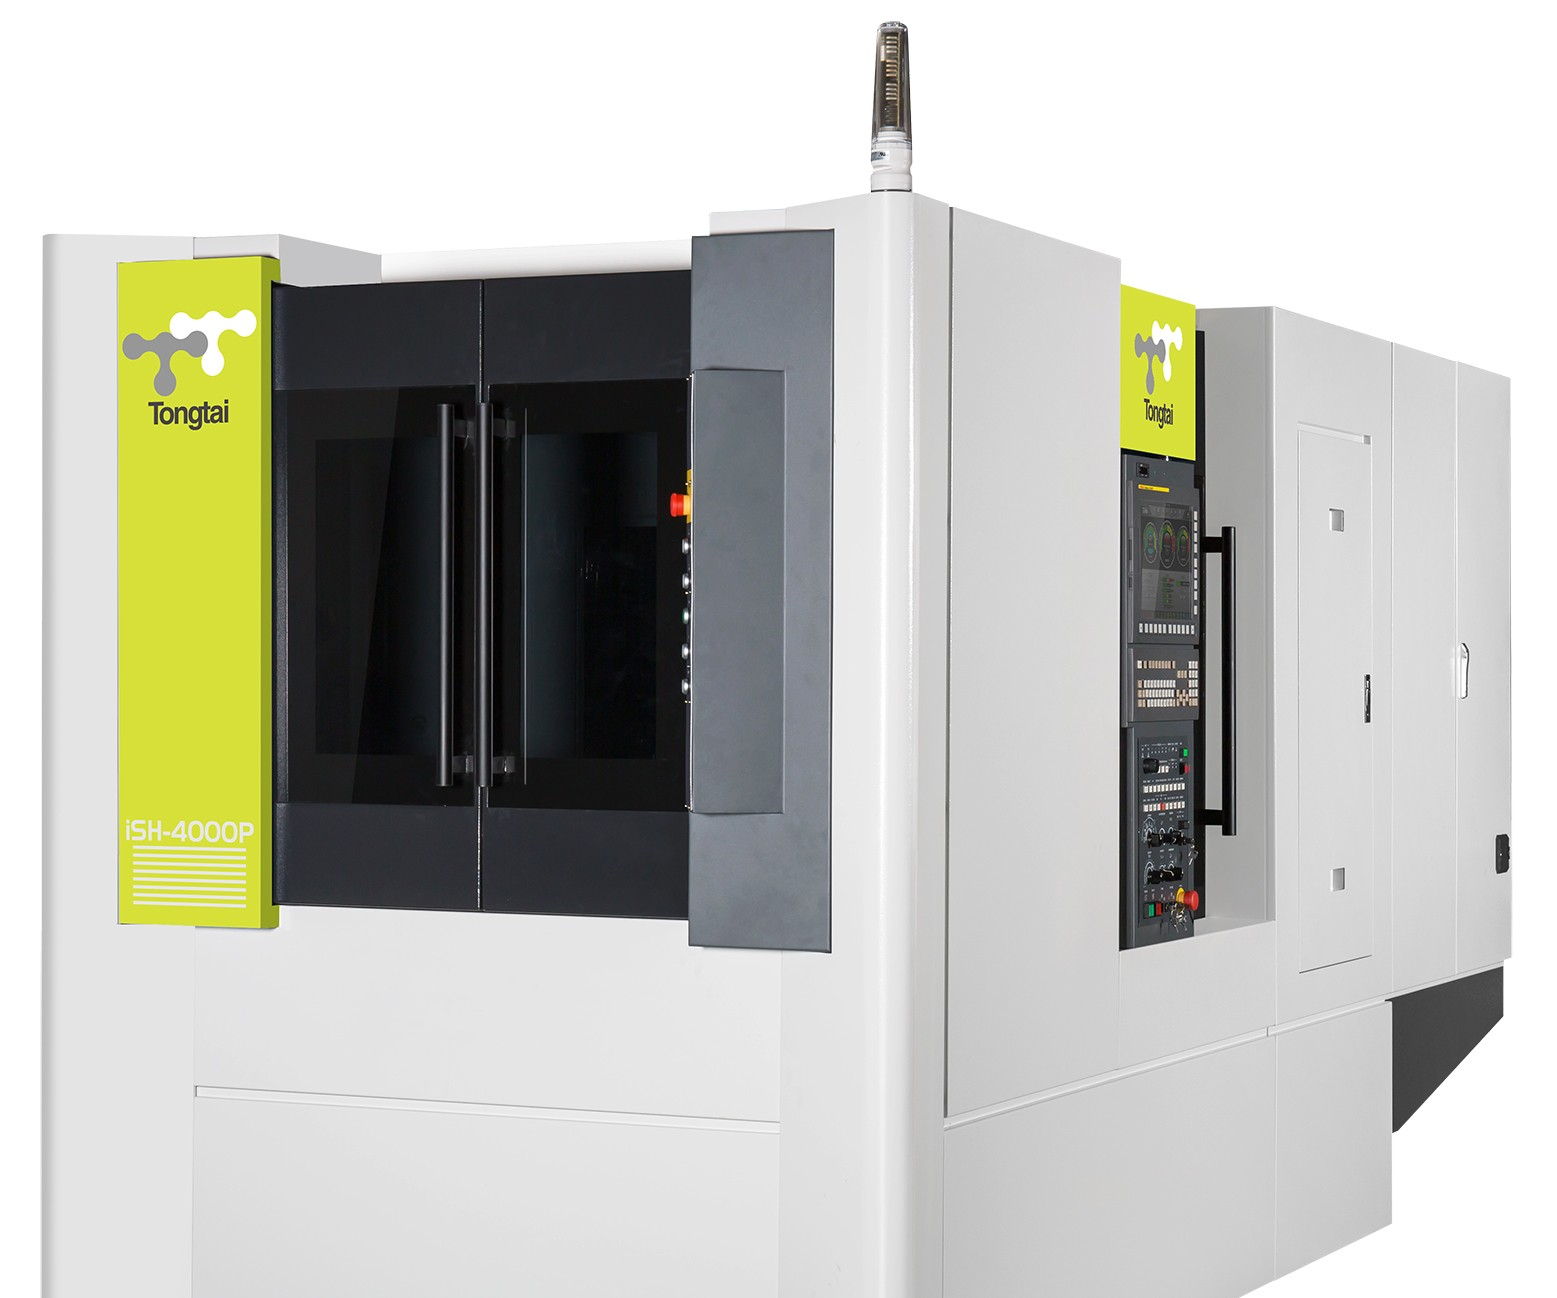 SH-4000P horizontal machining center from Tongtai